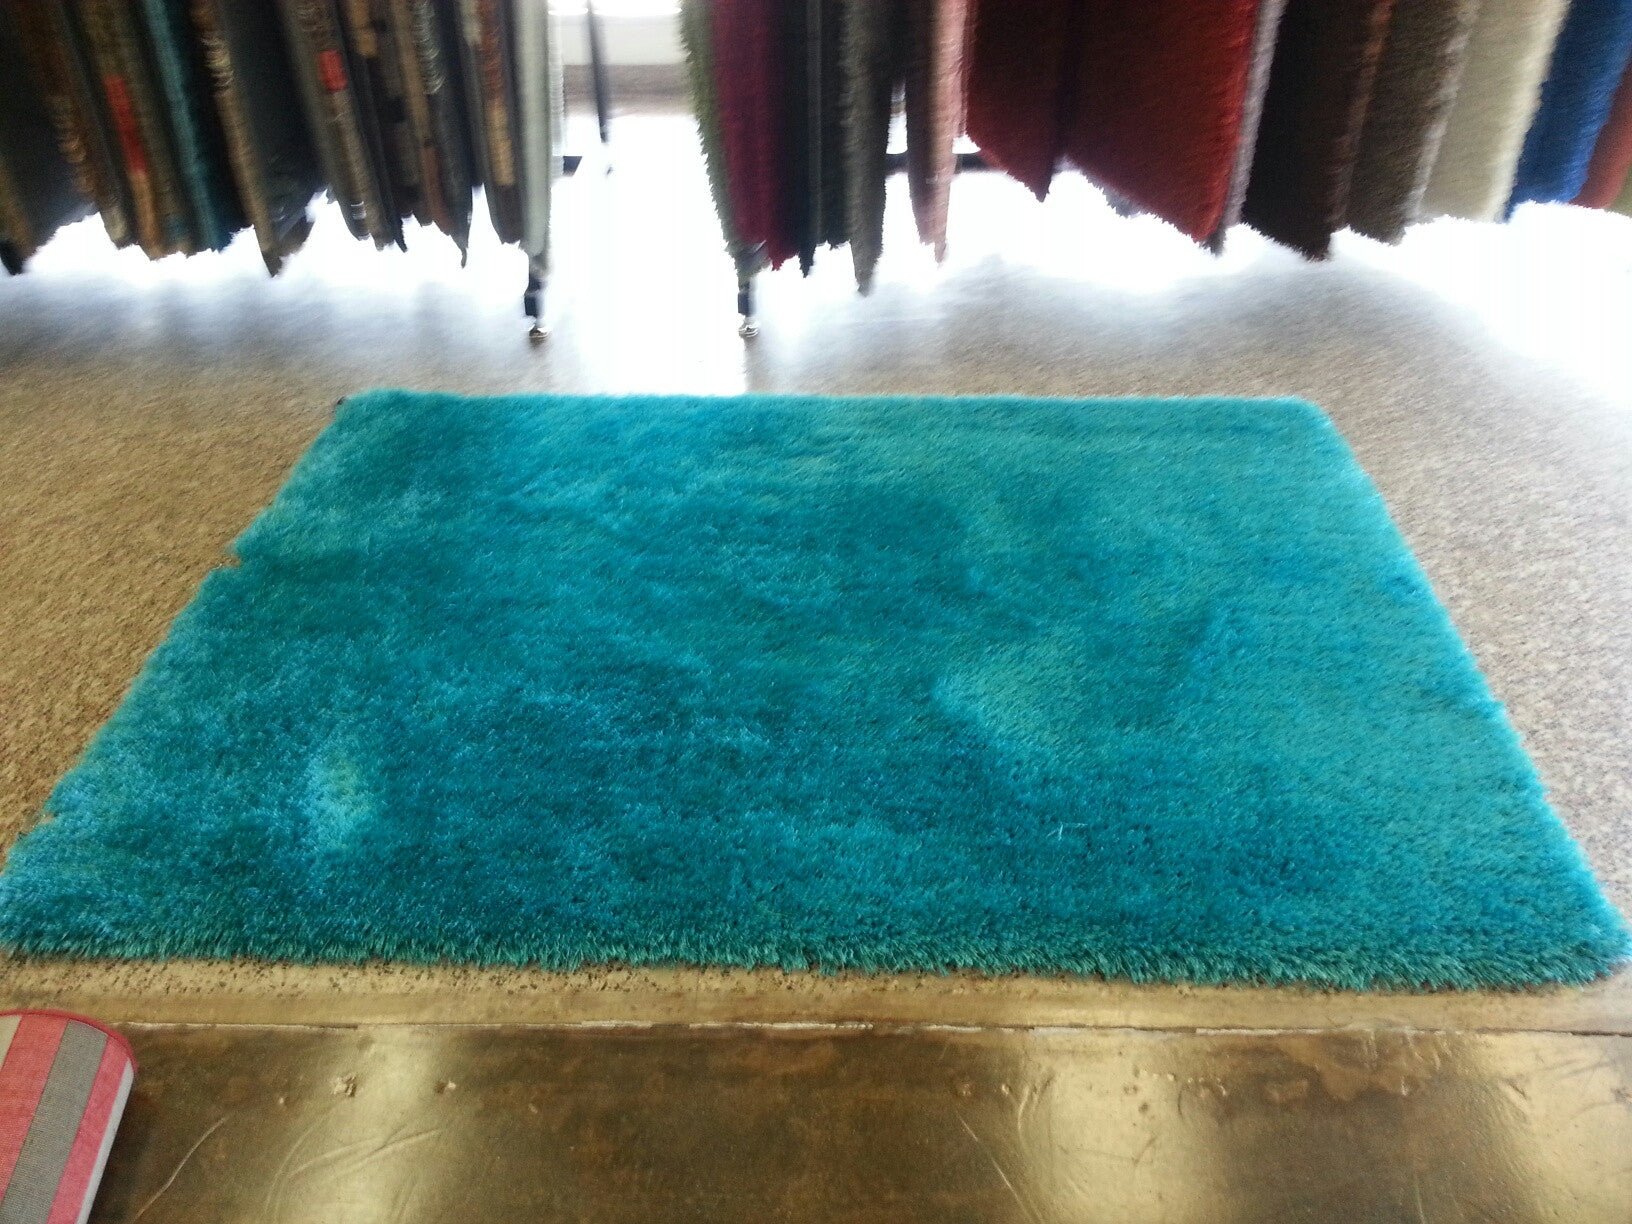 turquoise shag rug. 3-Piece Set | IN SINGLE SOLID VIBRANT TURQUOISE SHAG RUG , Turquoise Shag Rug